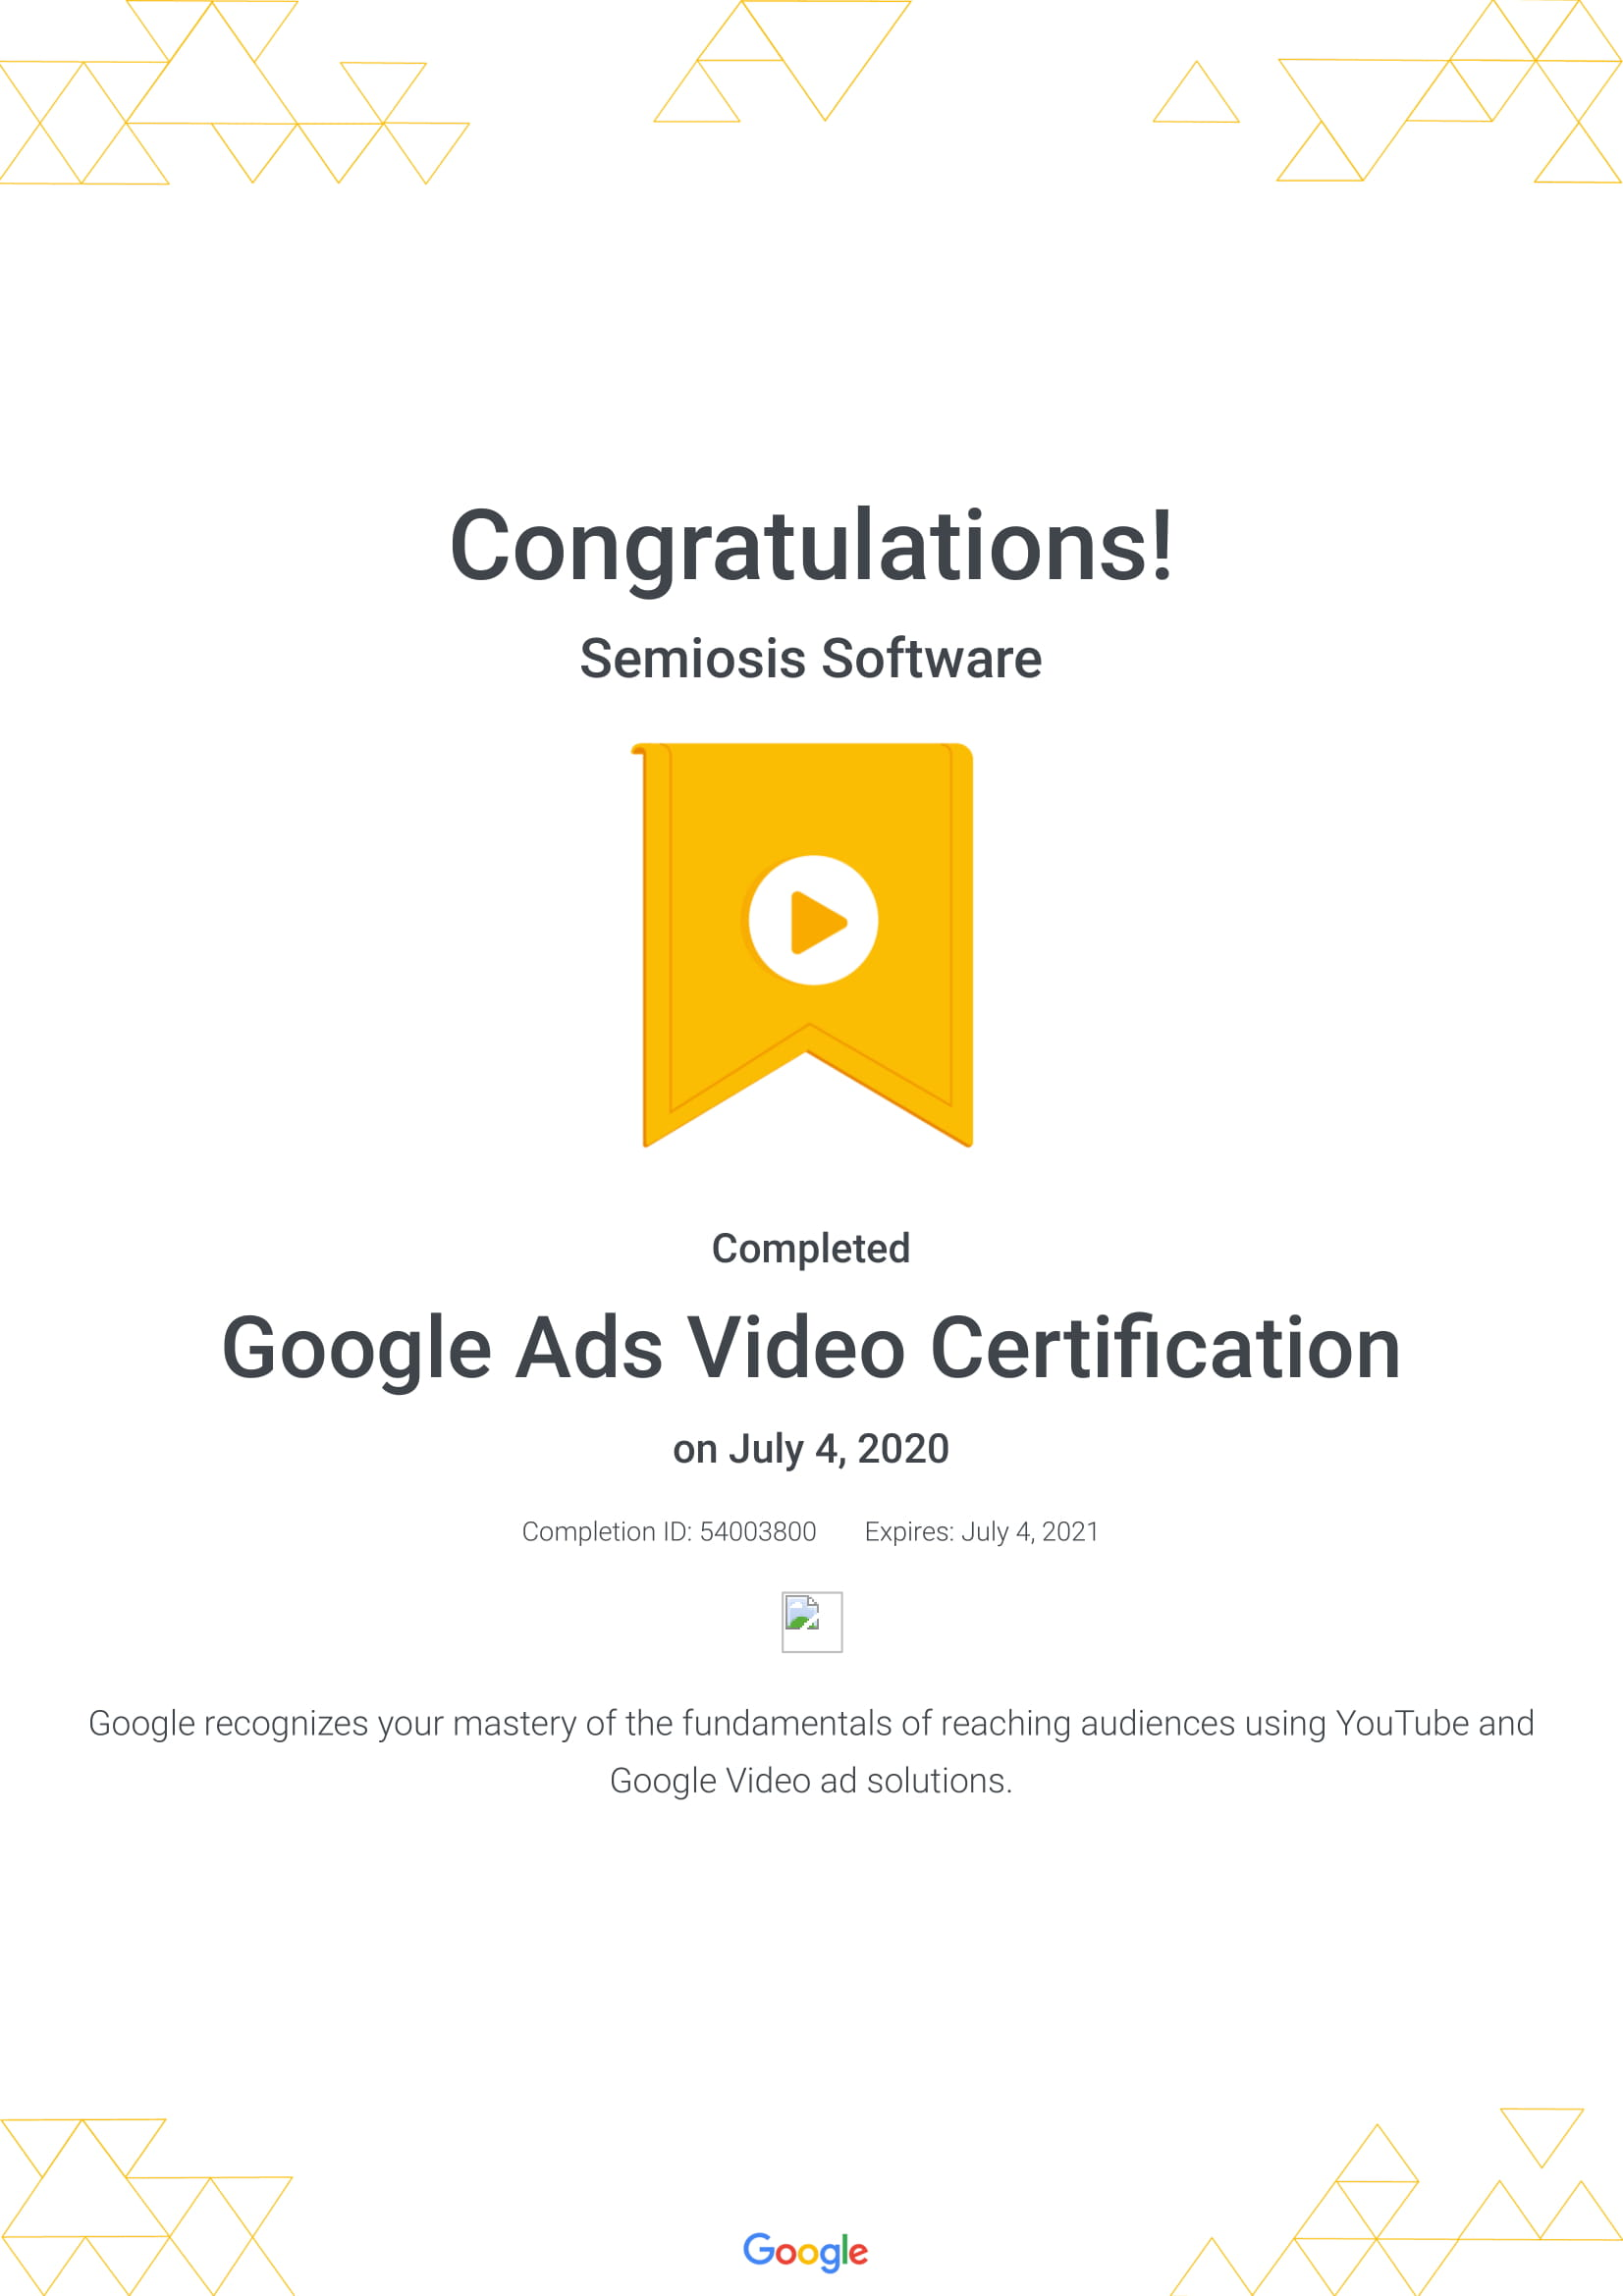 Google Ads Video Certification